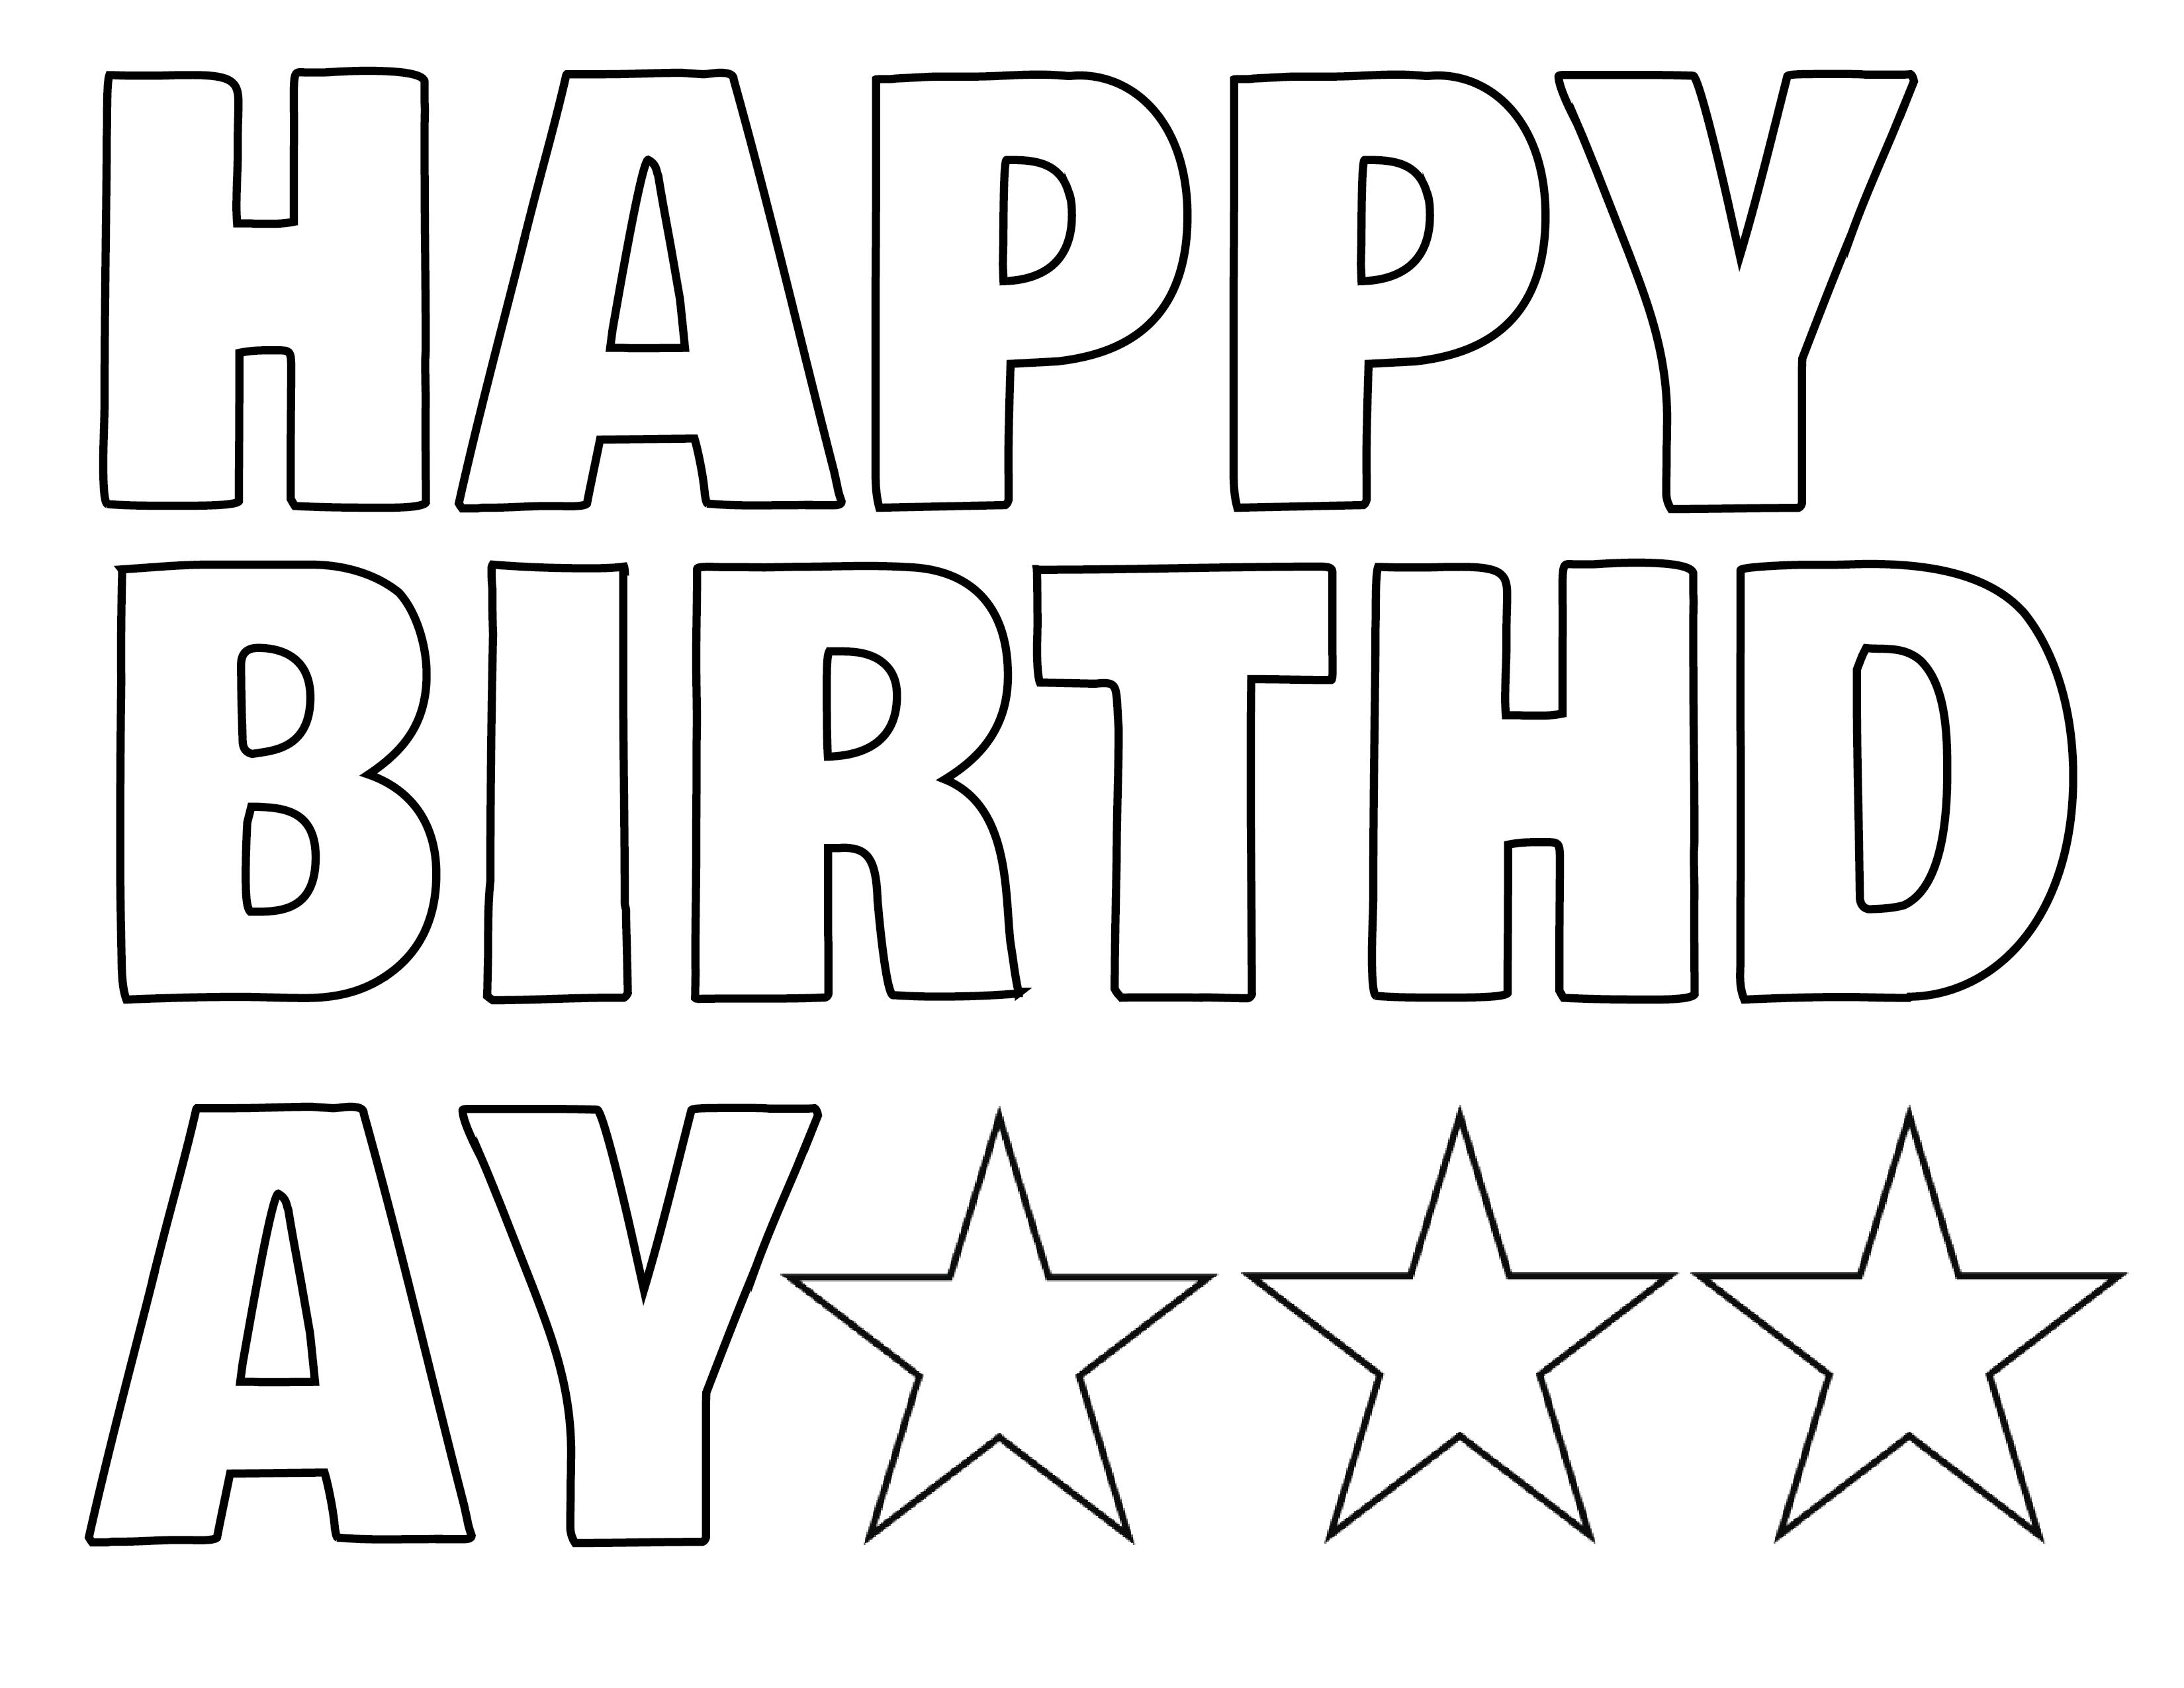 happy birthday coloring letters happy birthday balloons with letters coloring page for happy coloring letters birthday